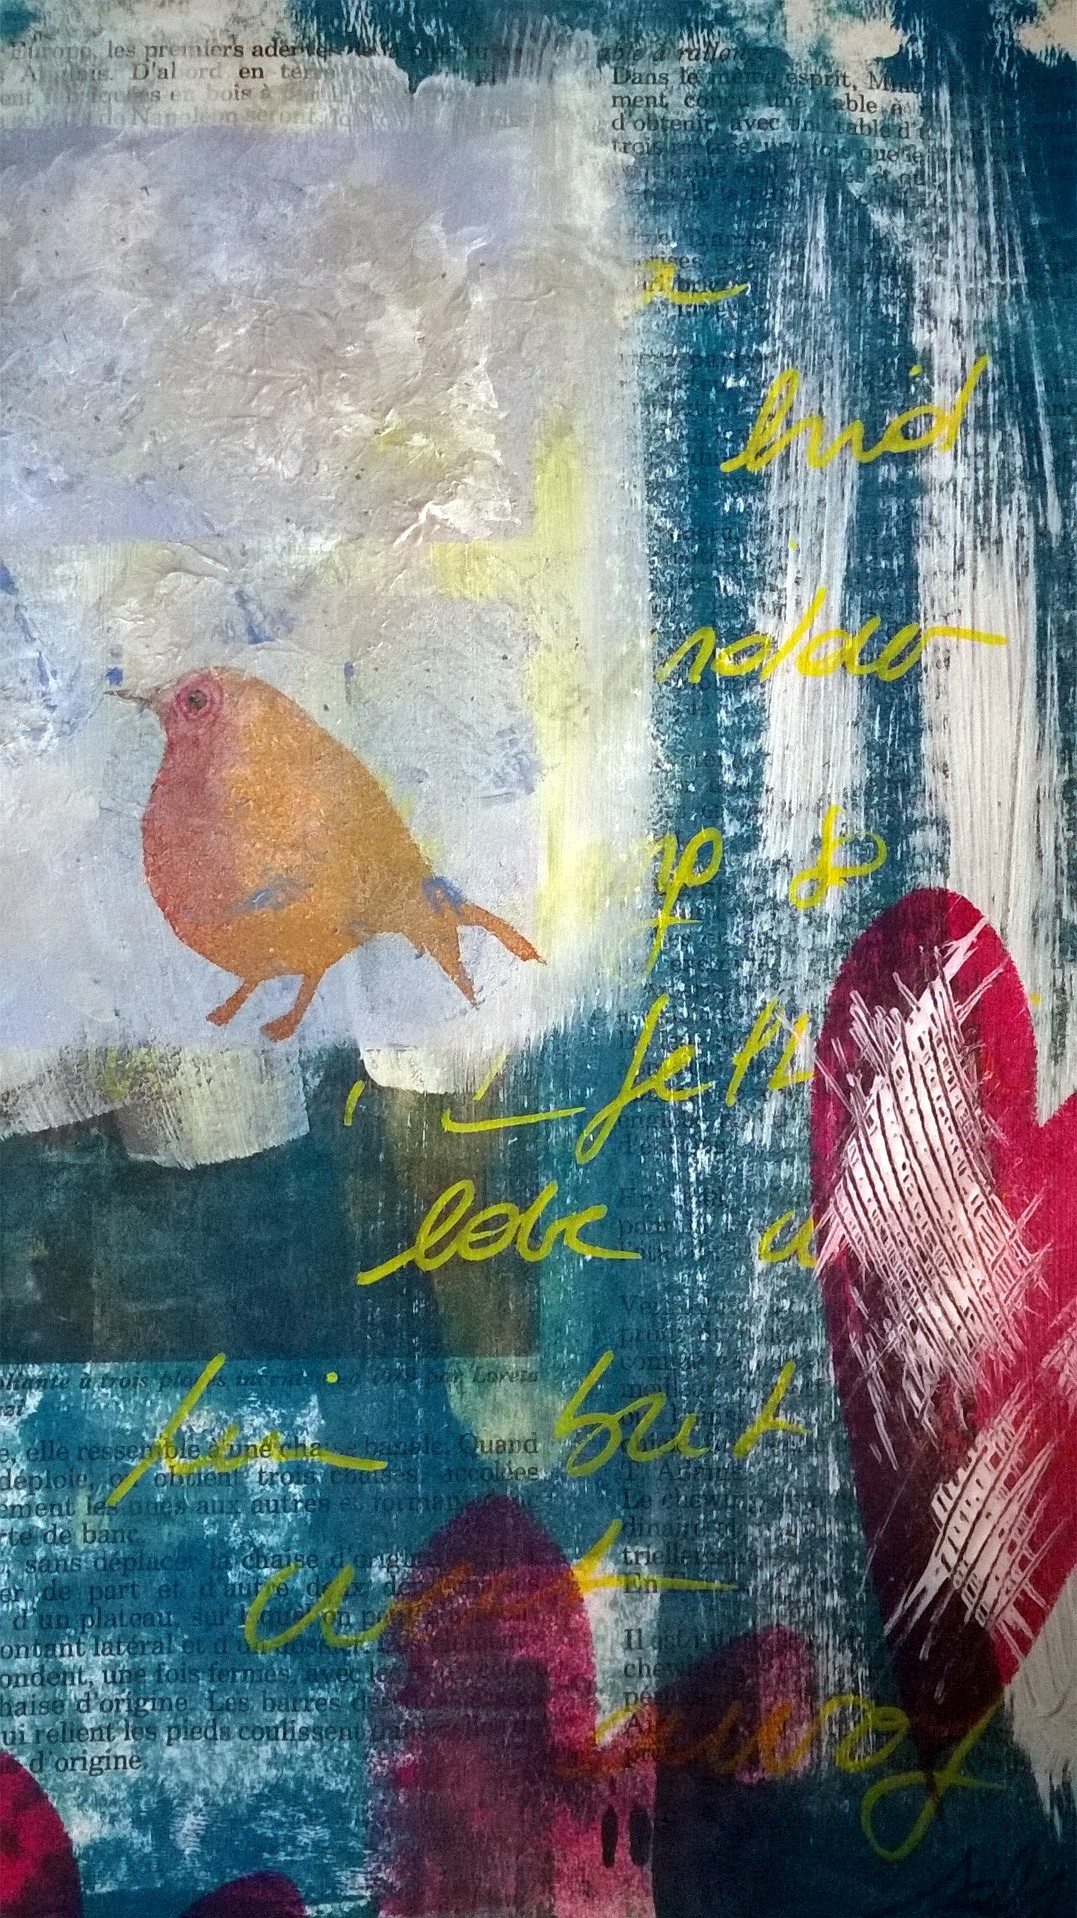 Mixed Media - 100 Artworks - 42Mixed Media - 100 Artworks - #42 I felt in Love with a Bird but